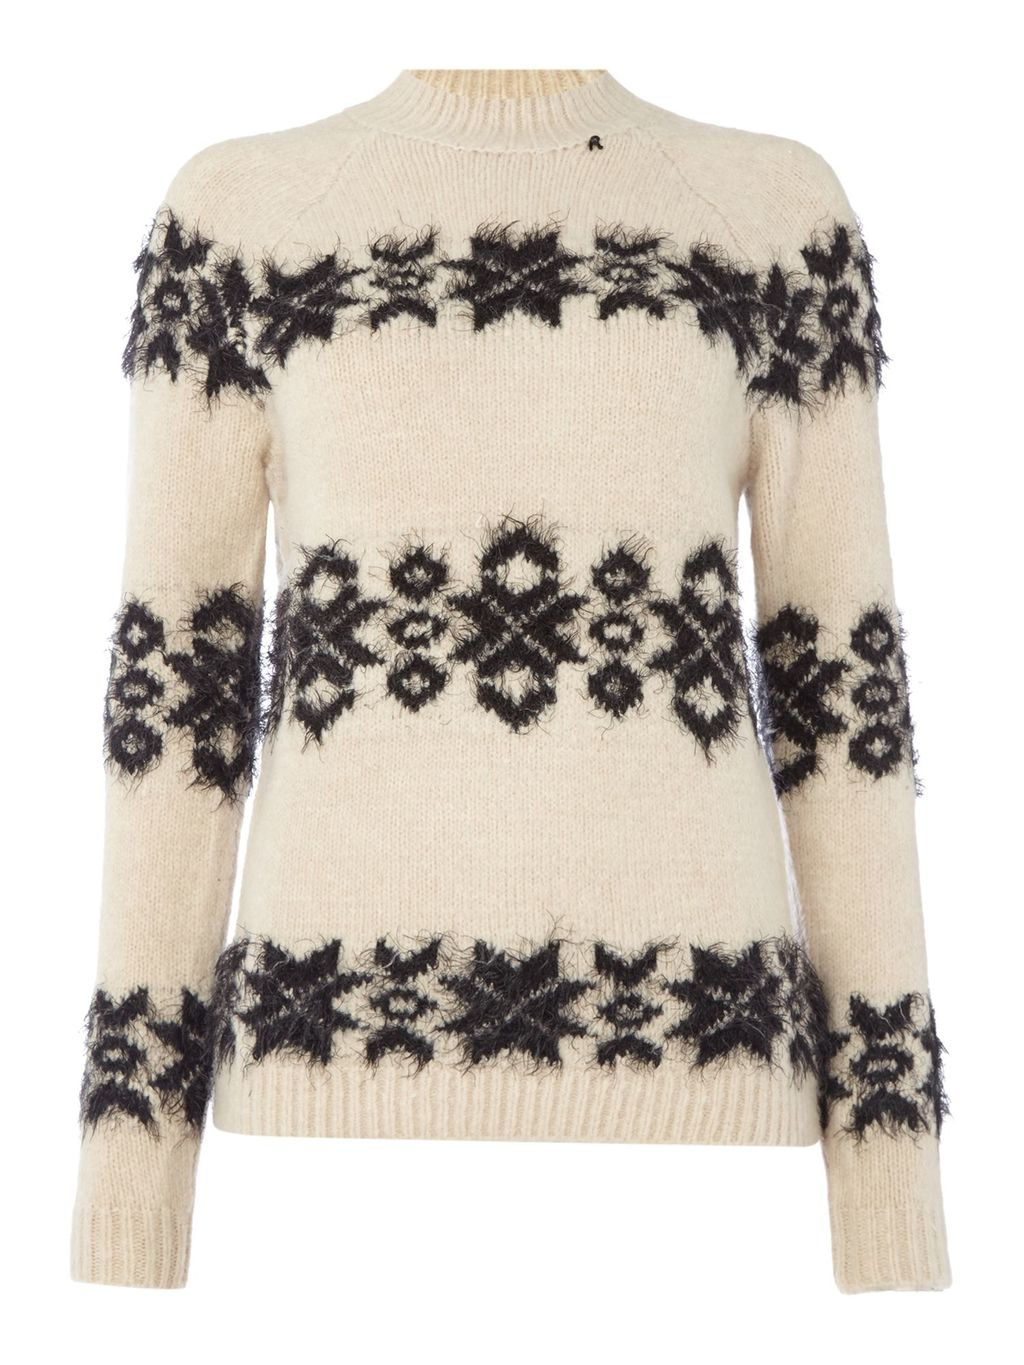 Wool Blend Jumper With Embroidery, Beige - style: standard; predominant colour: ivory/cream; secondary colour: black; occasions: casual, creative work; length: standard; fibres: wool - mix; fit: standard fit; neckline: crew; sleeve length: long sleeve; sleeve style: standard; texture group: knits/crochet; pattern type: knitted - fine stitch; pattern: patterned/print; pattern size: big & busy (top); season: s/s 2016